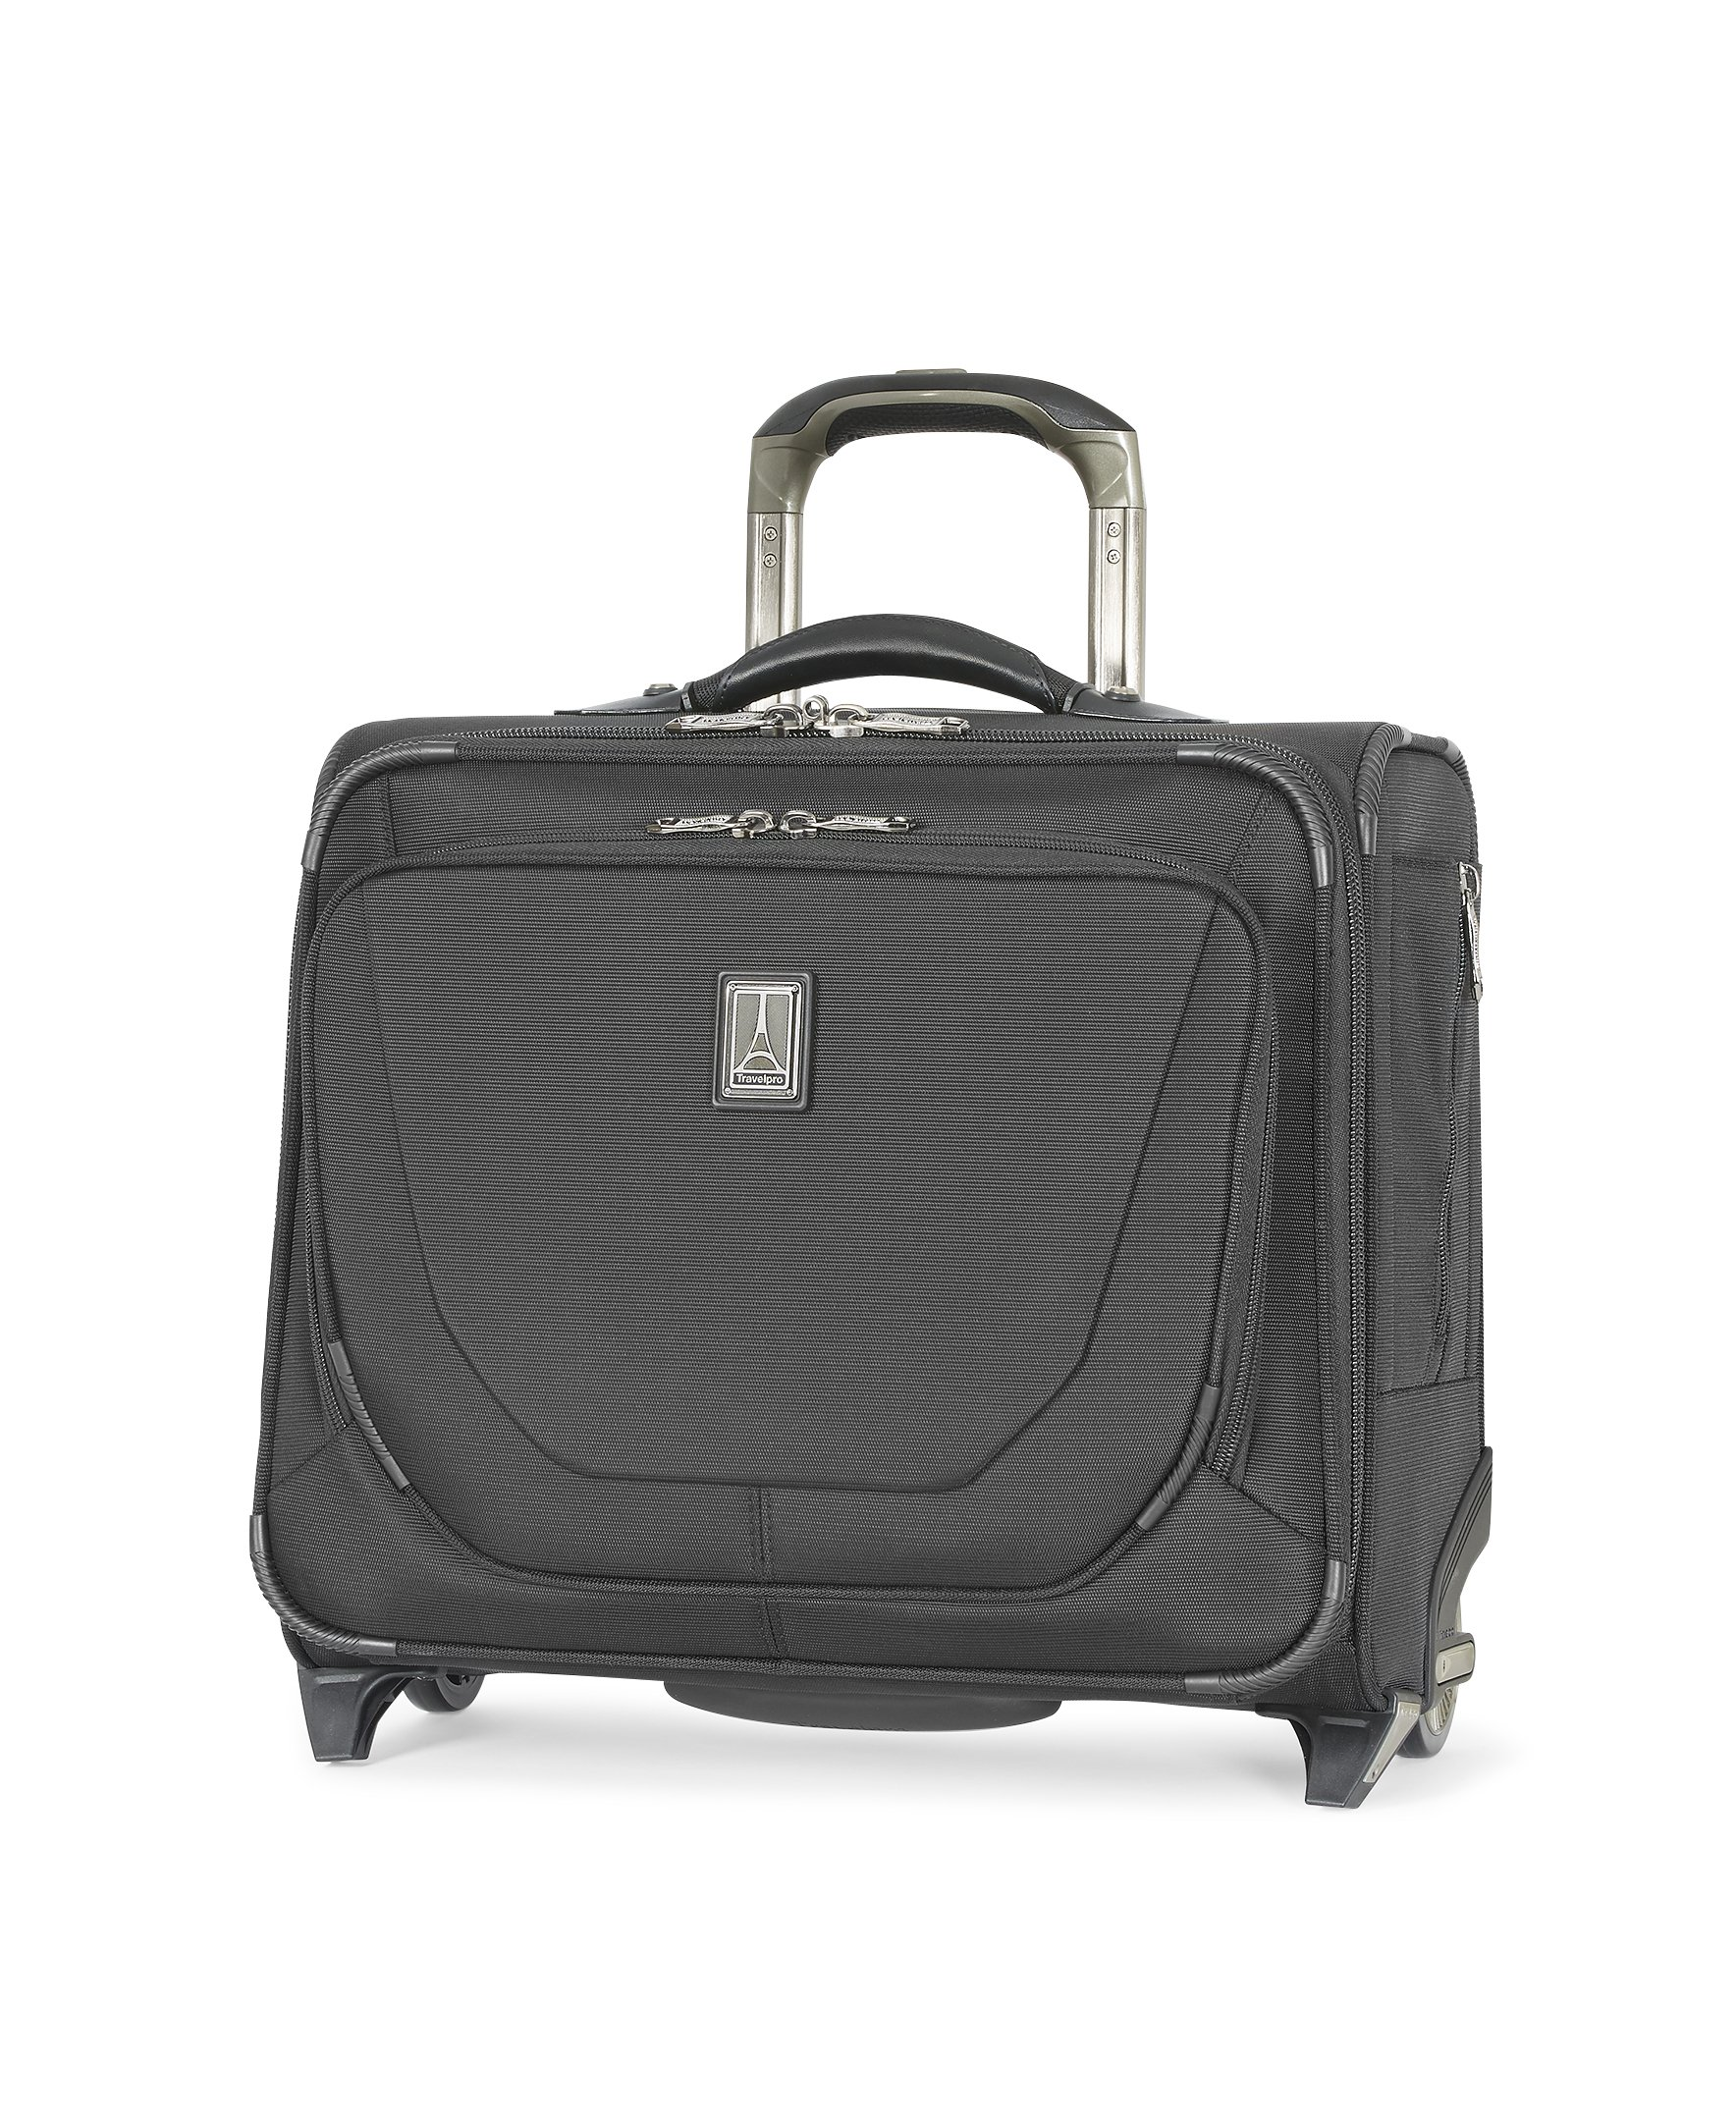 Travelpro Crew 11 Rolling Tote, Black by Travelpro